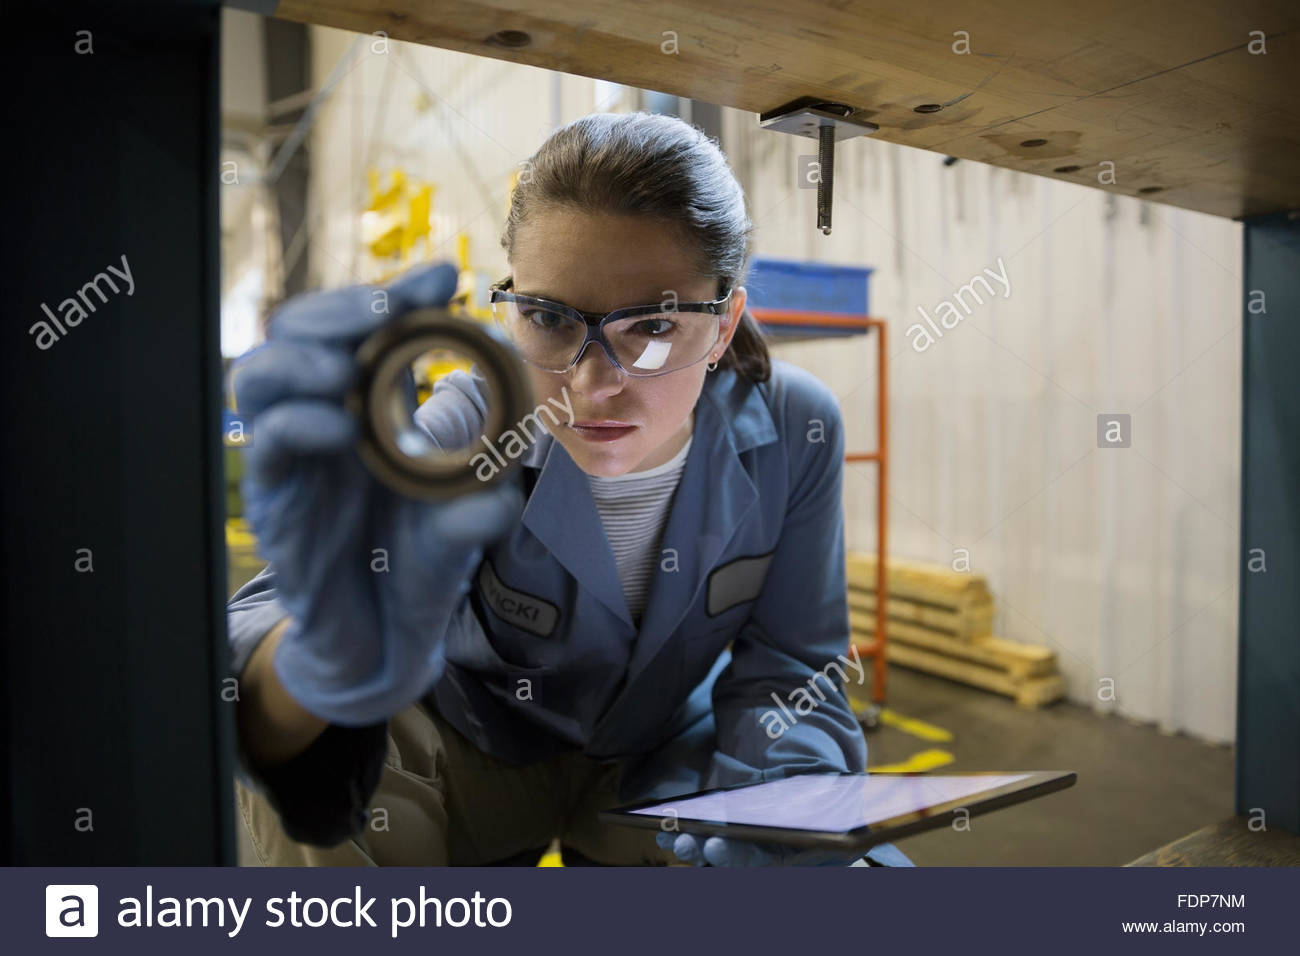 Focused worker with digital tablet examining part factory - Stock Image